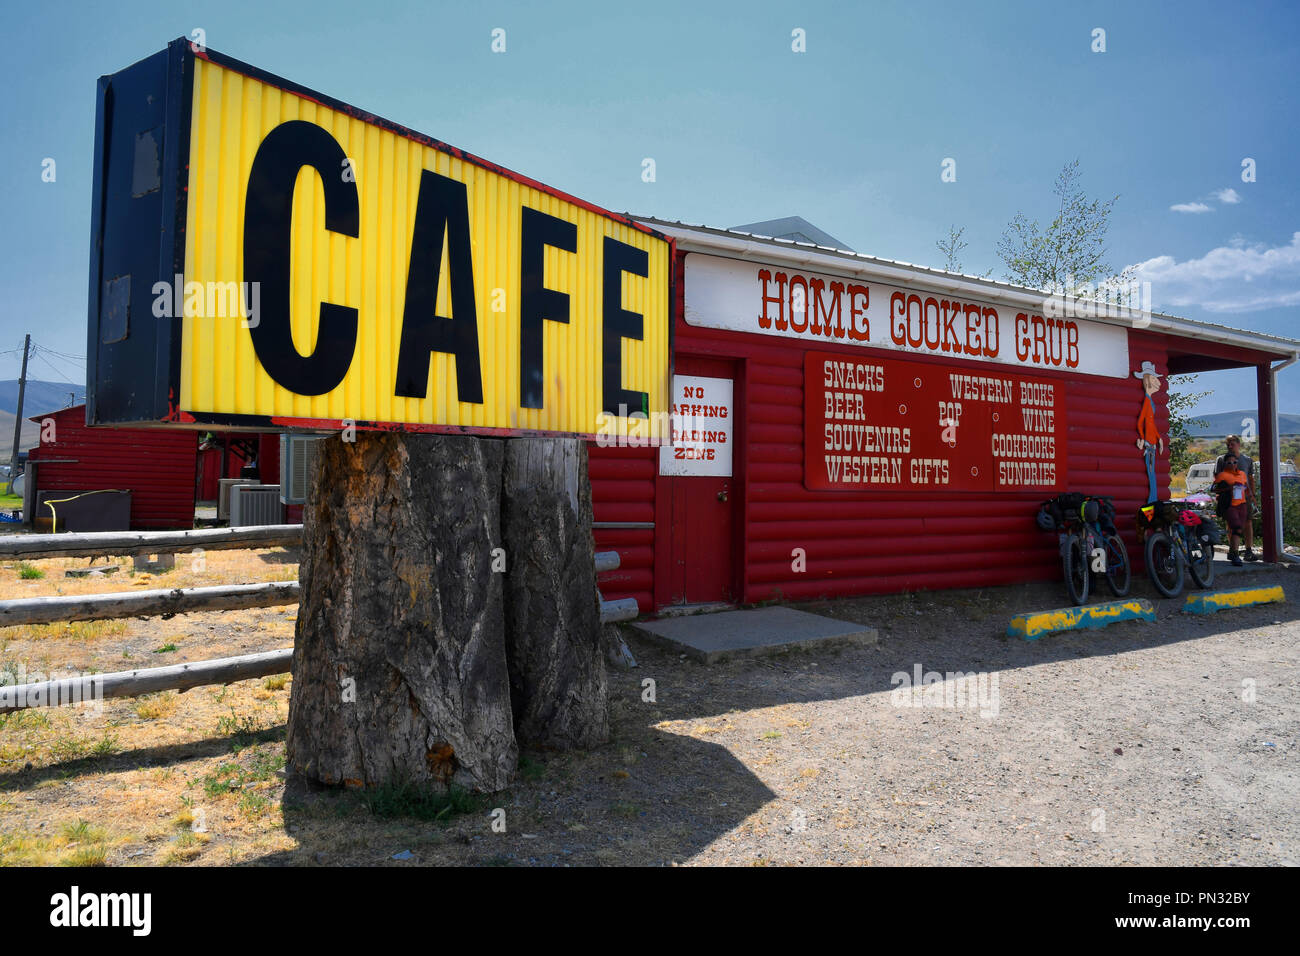 LIMA, MONTANA, USA - August 11, 2018: Exterior of a log cabin cafe featuring home cooked grub Stock Photo